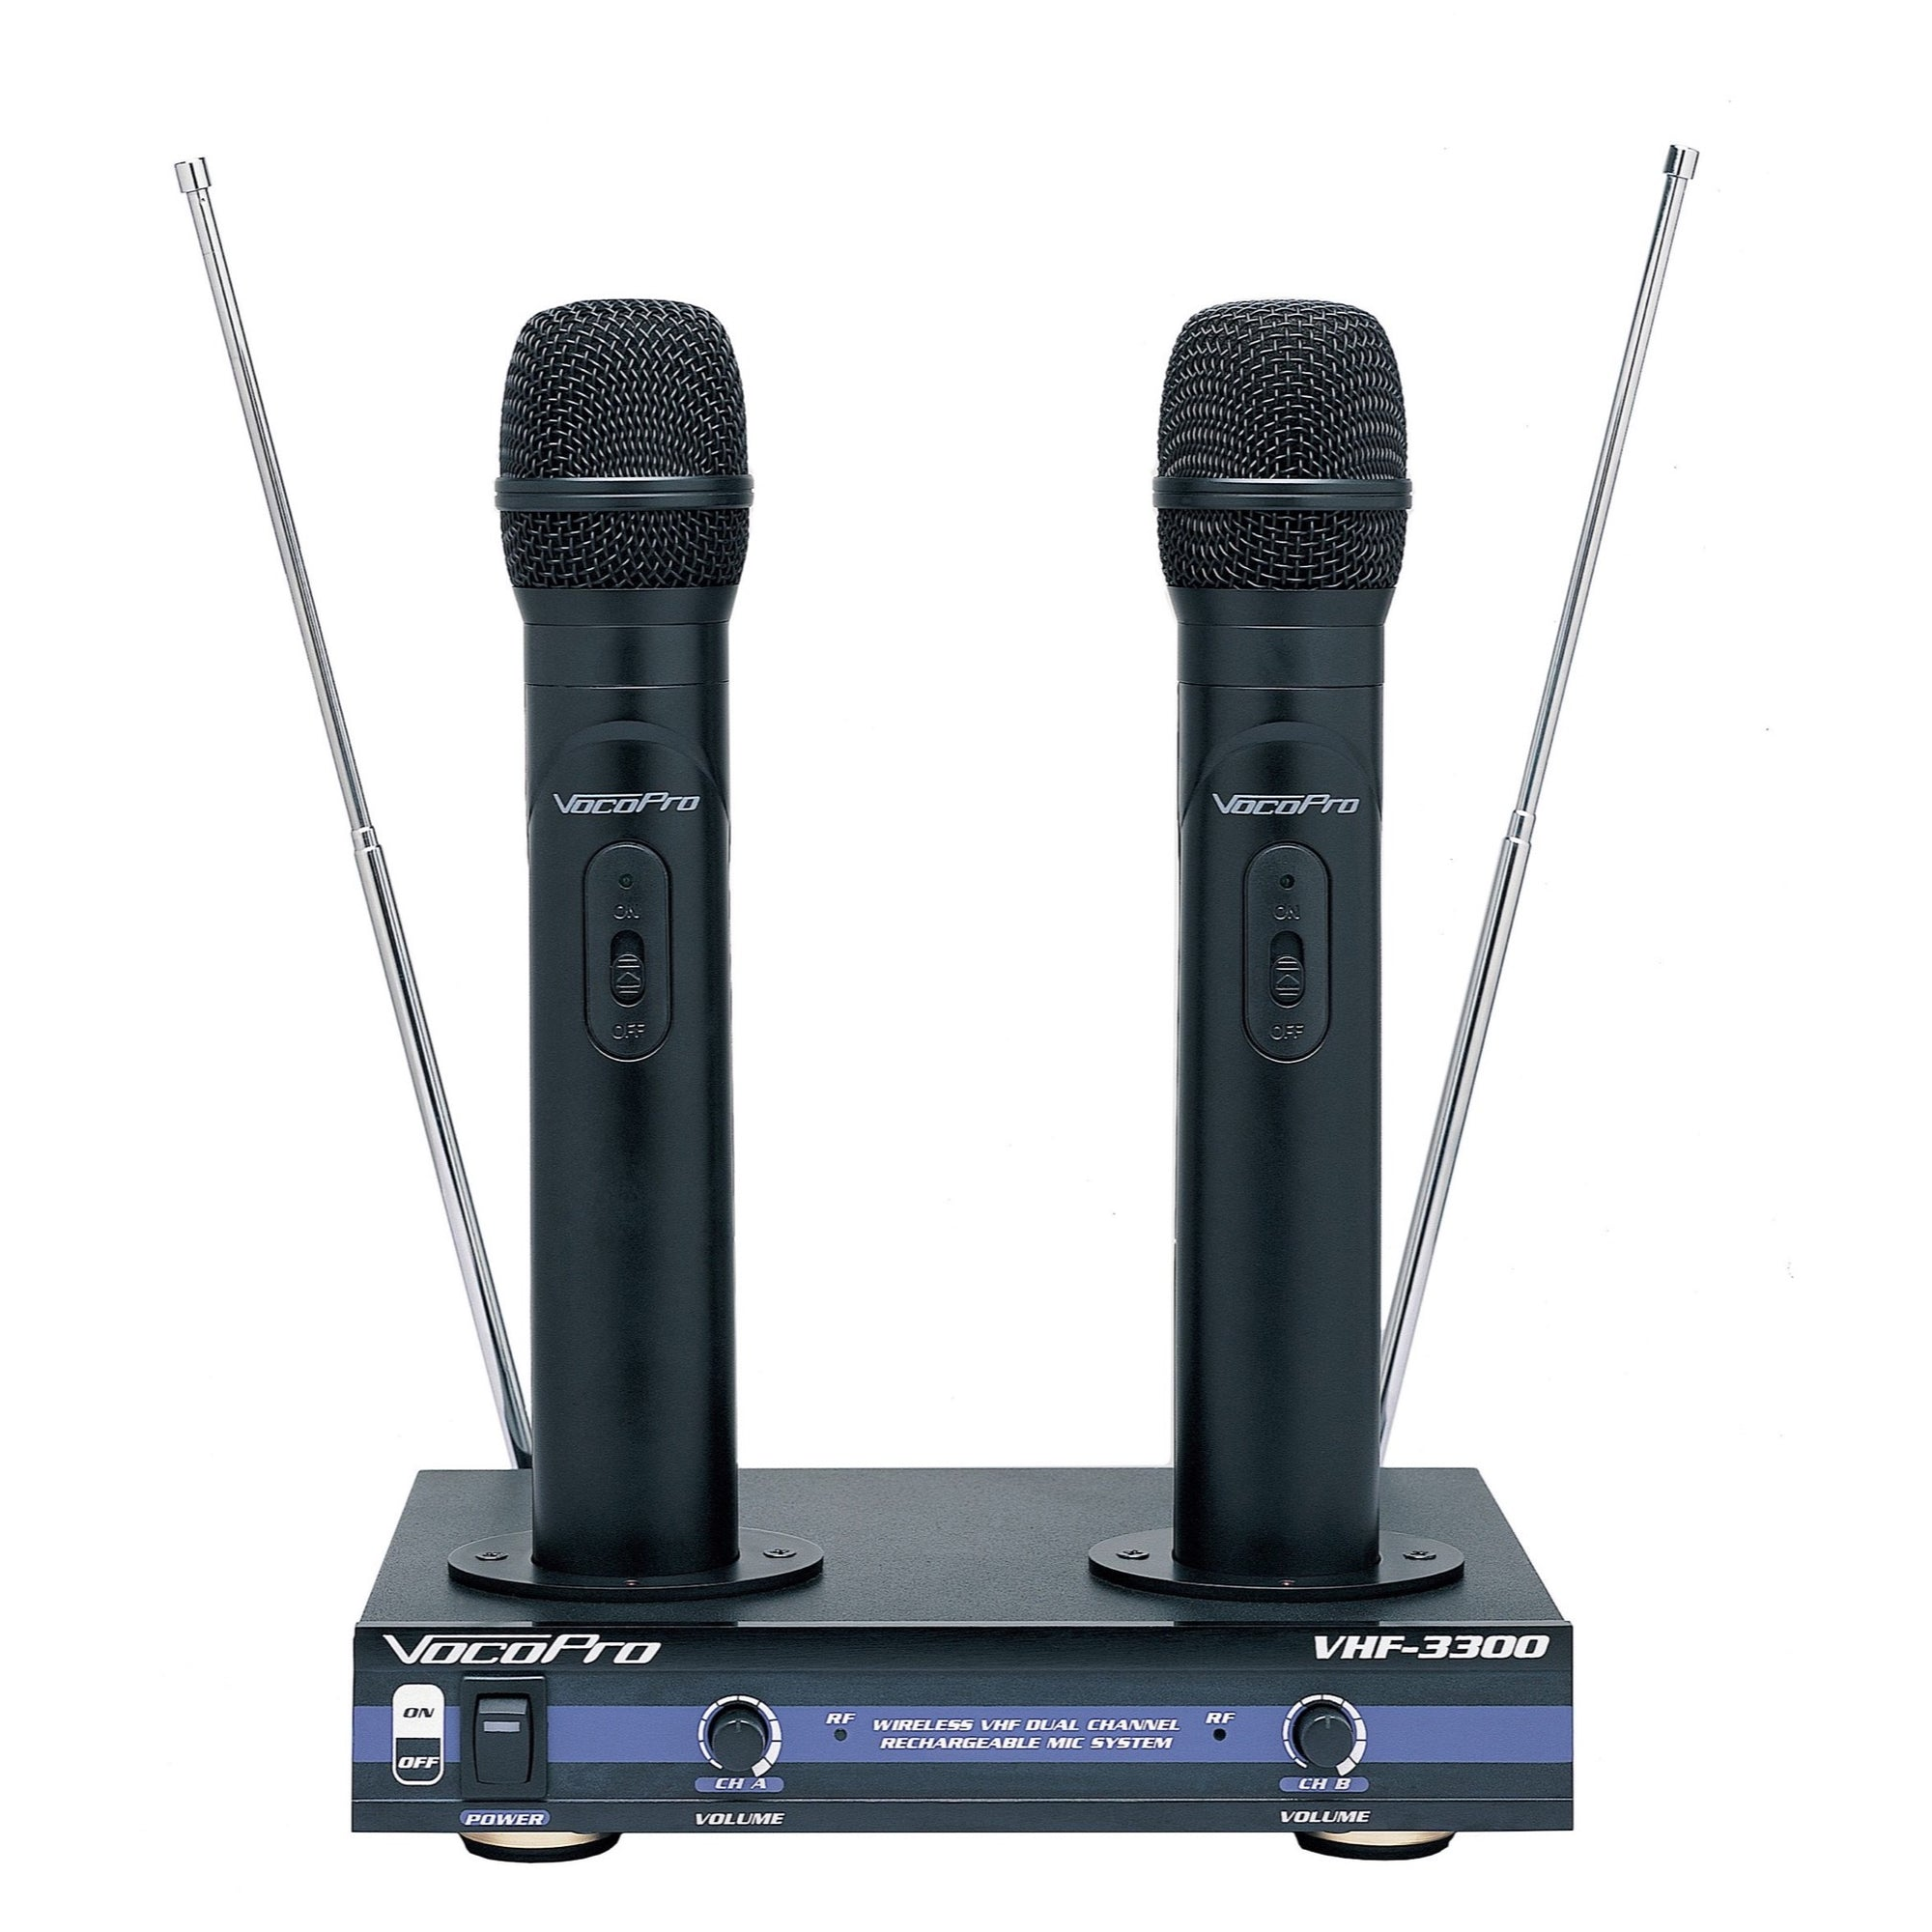 VocoPro VHF-3300 Dual Rechargeable Handheld Wireless Microphone System, 180.20 - 204.80 MHz